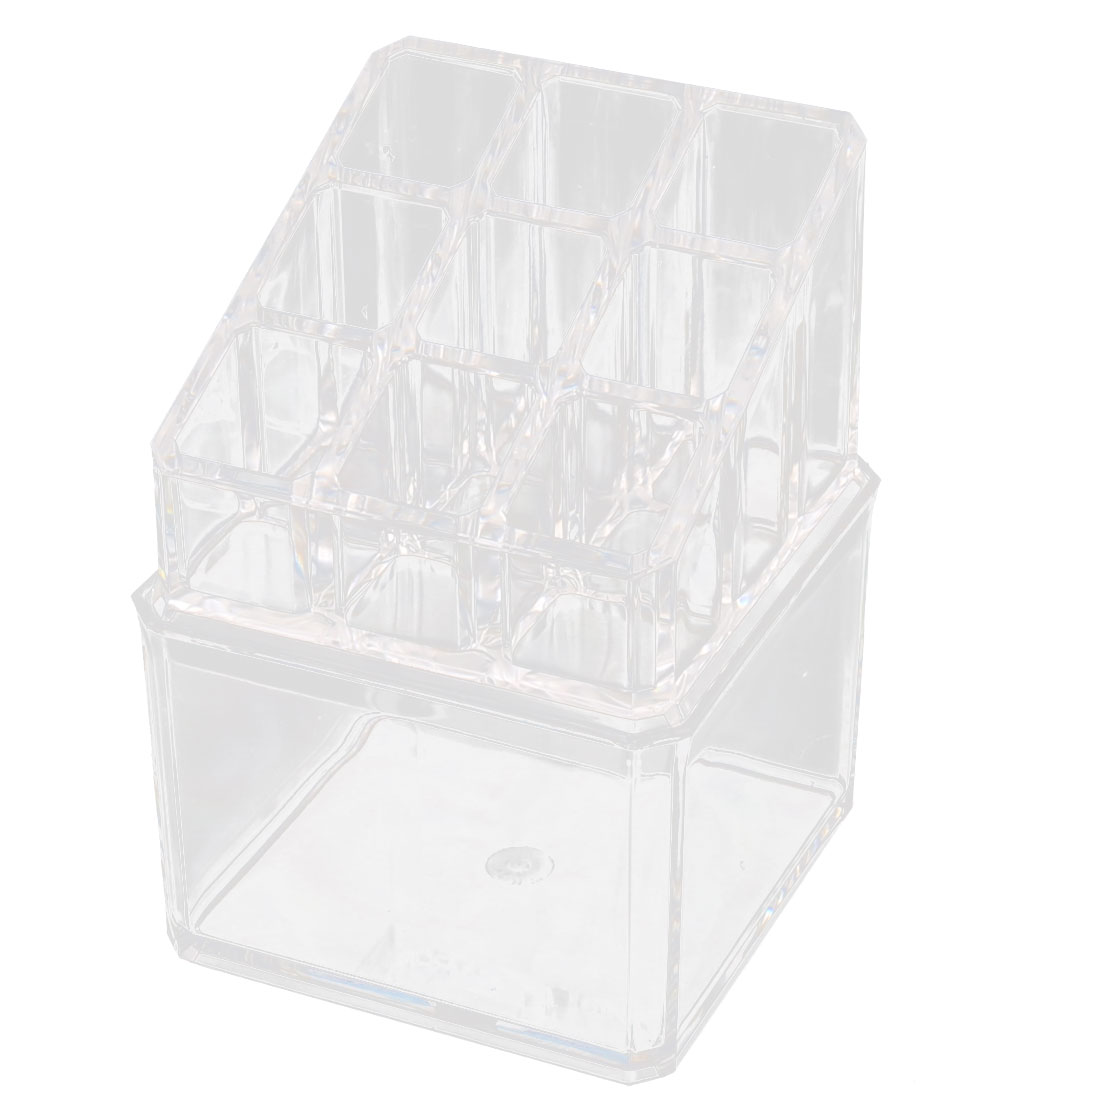 Acrylic 10 Slots Cotton Pads Cosmetic Tool Display Case Jewelry Box Organizer Clear